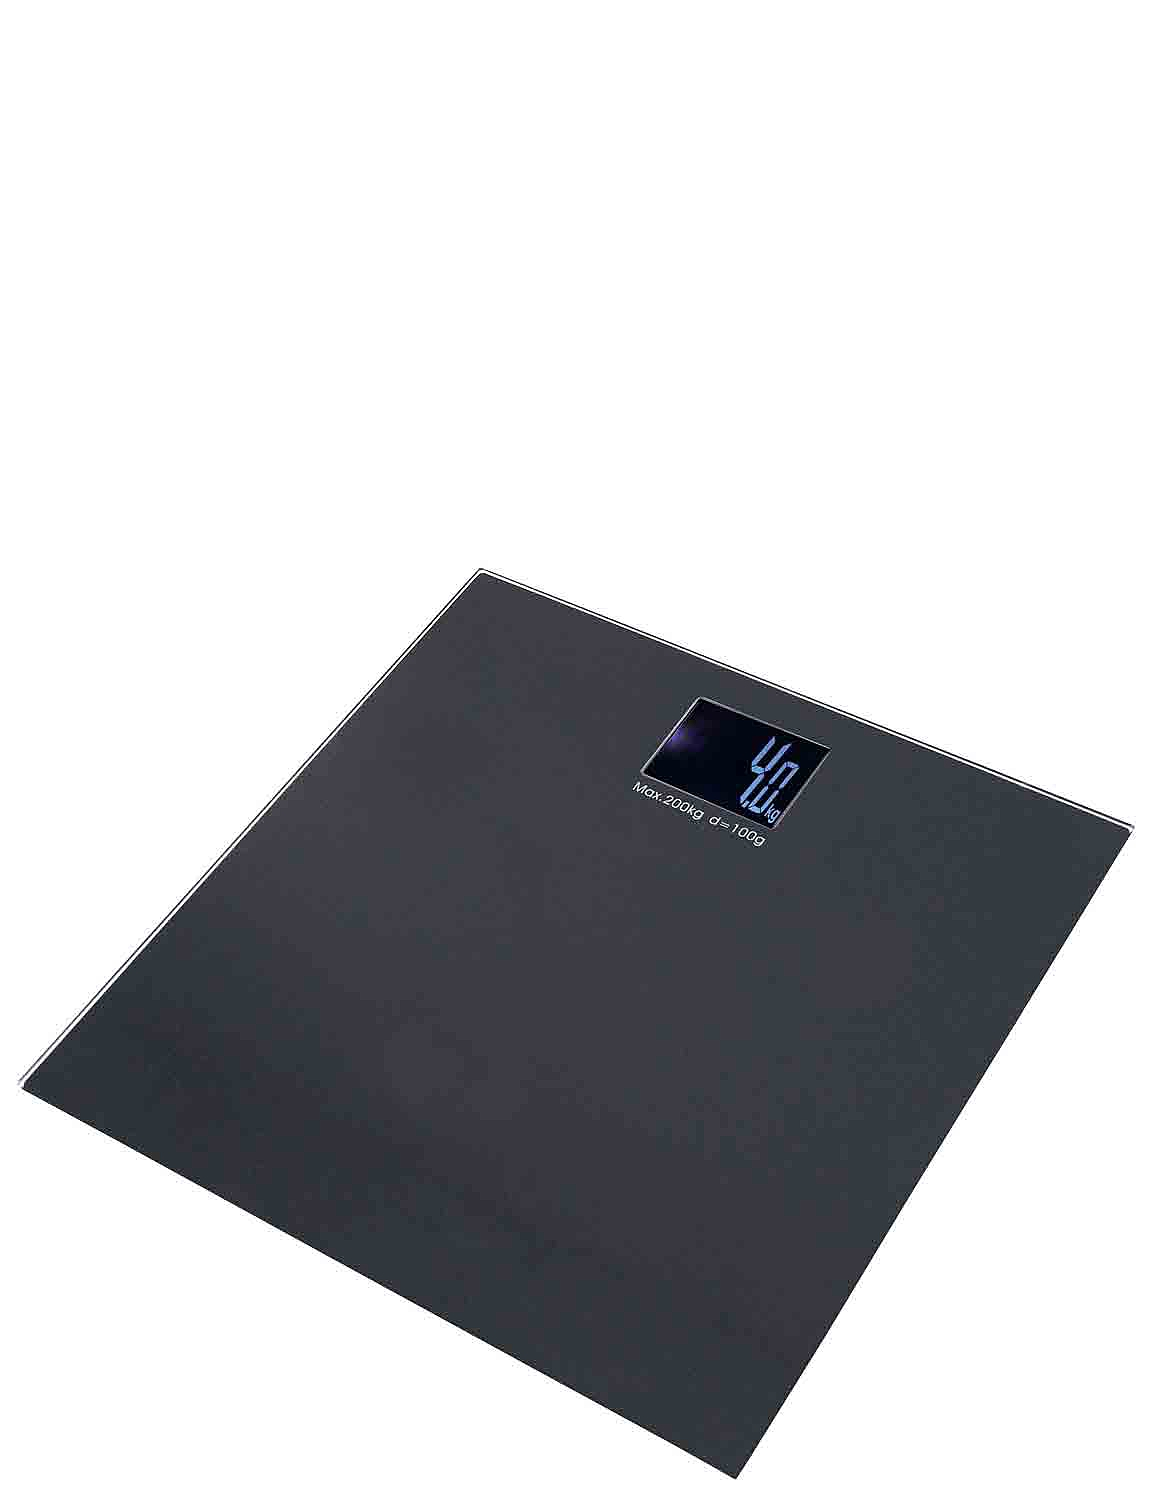 Talking Bathroom Scales - Black